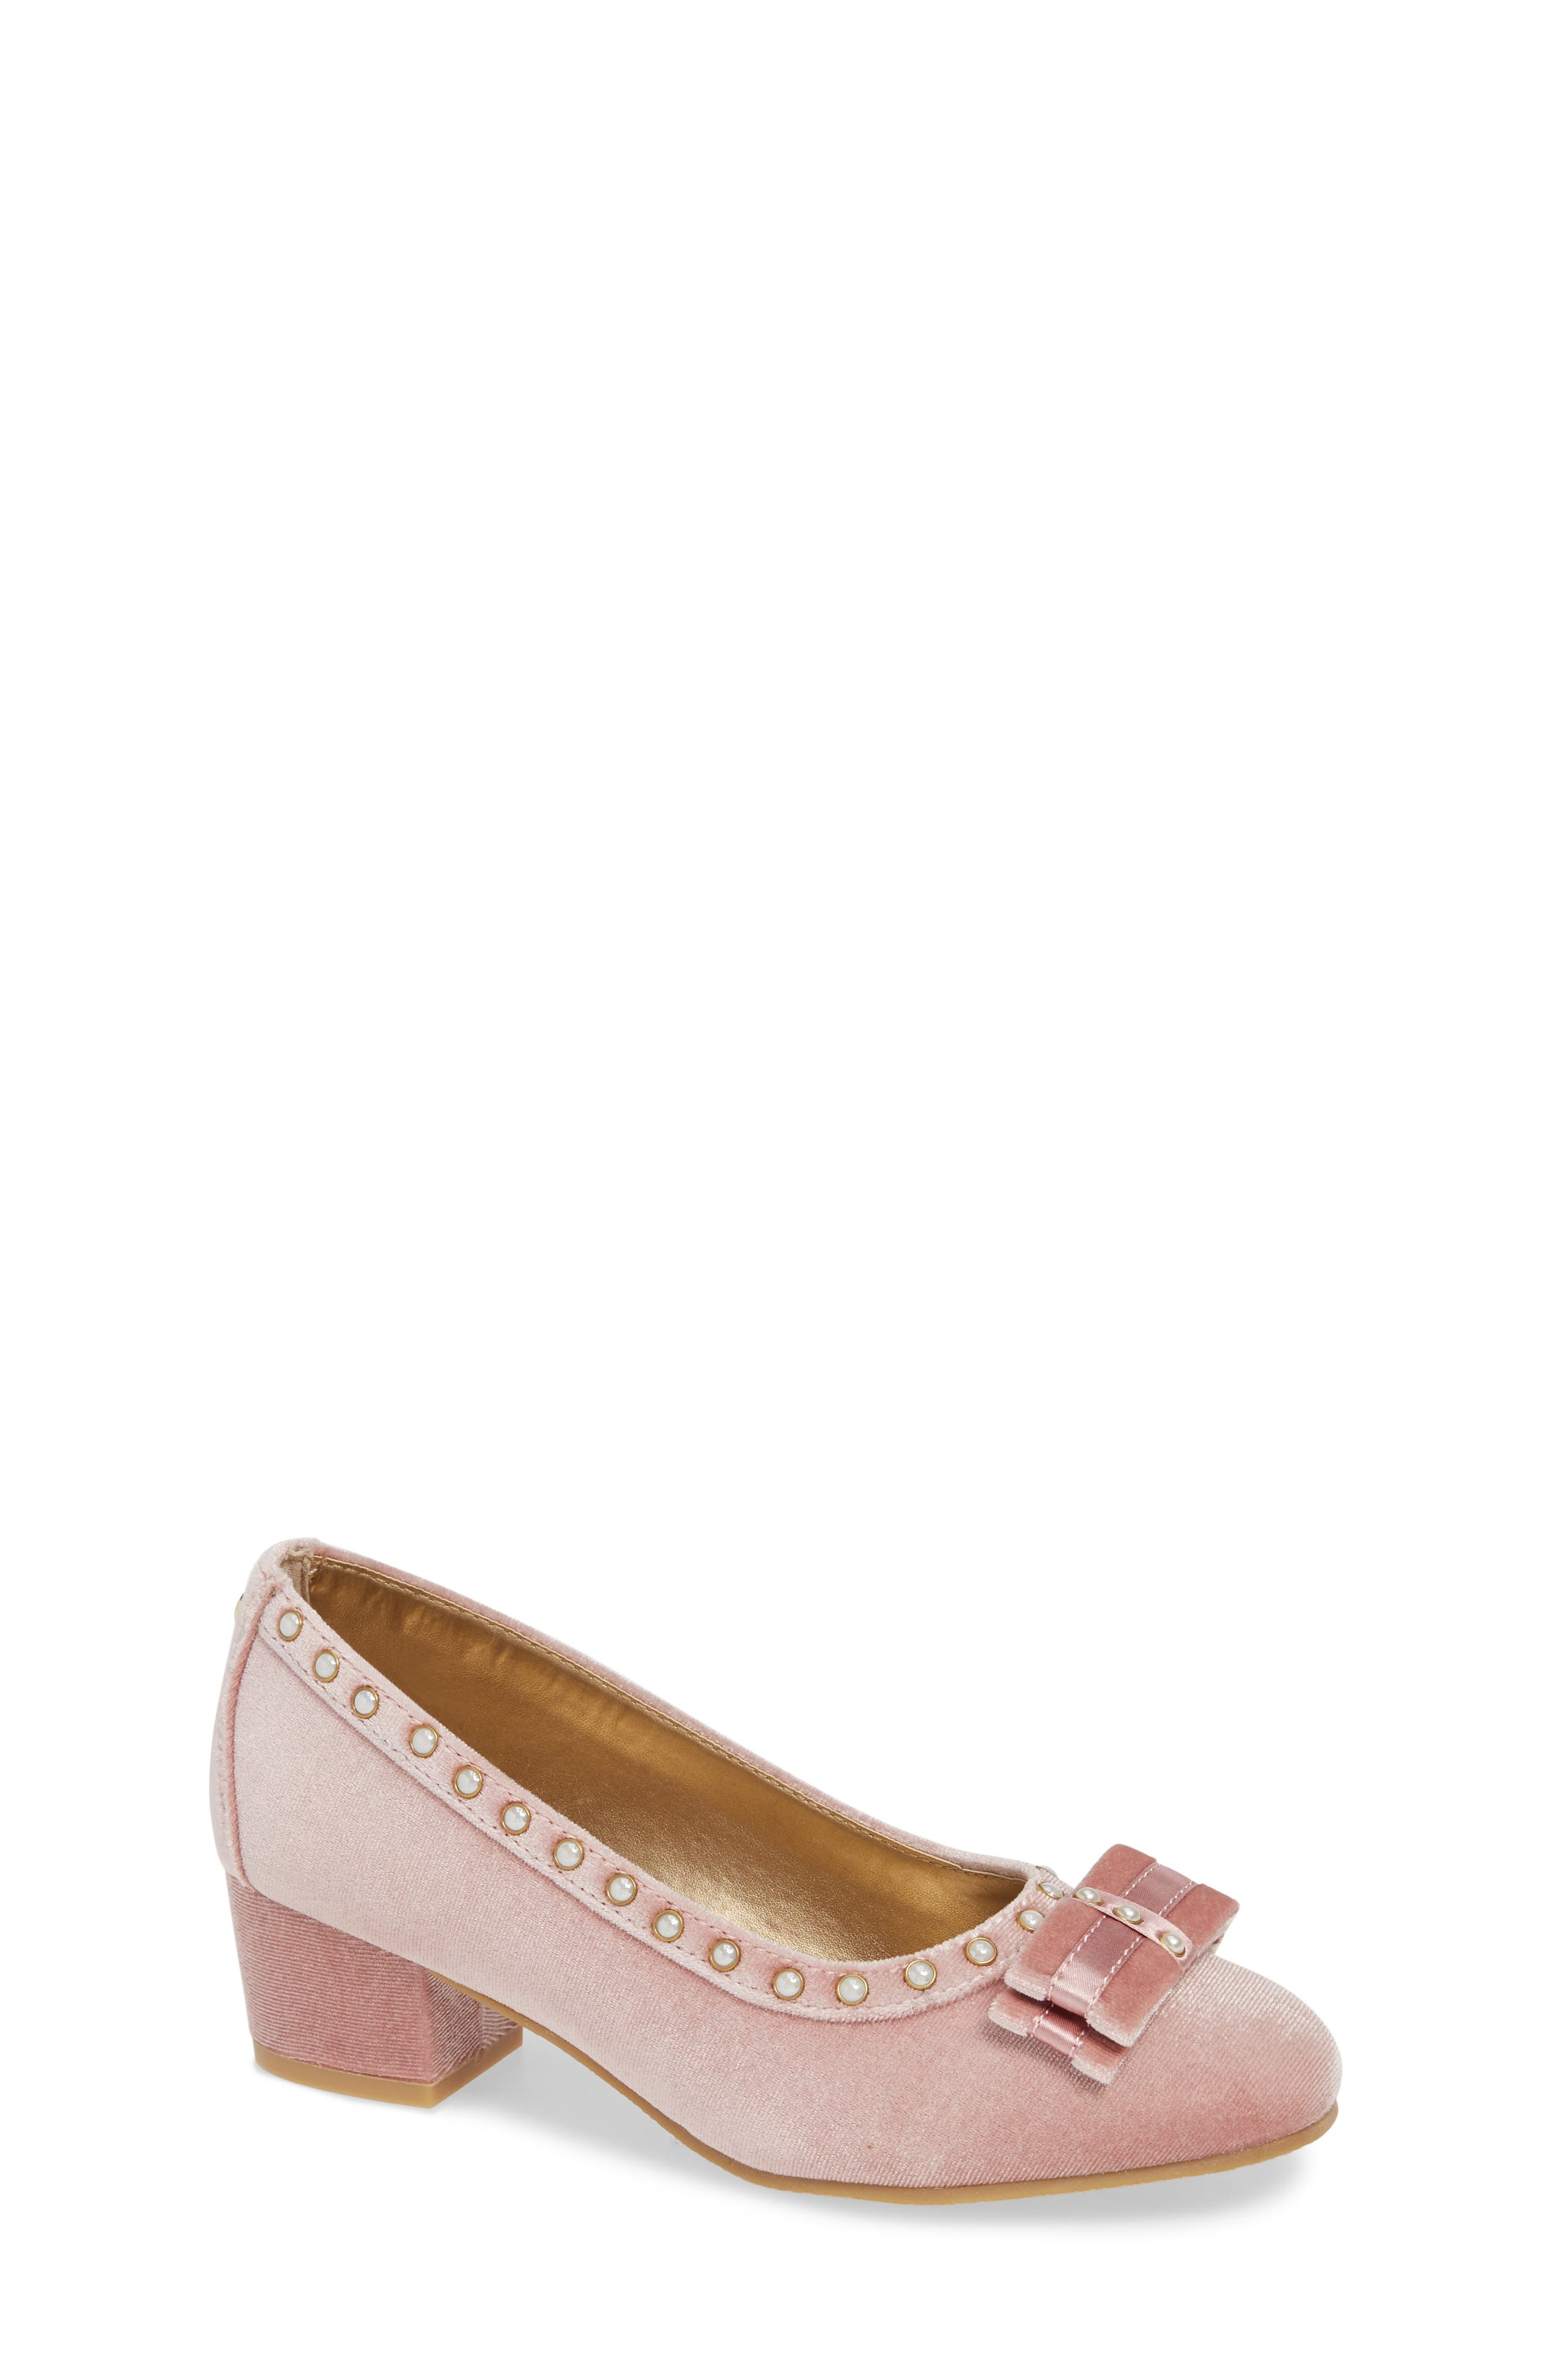 Evelyn Kammie Pump,                         Main,                         color, MELLOW ROSE